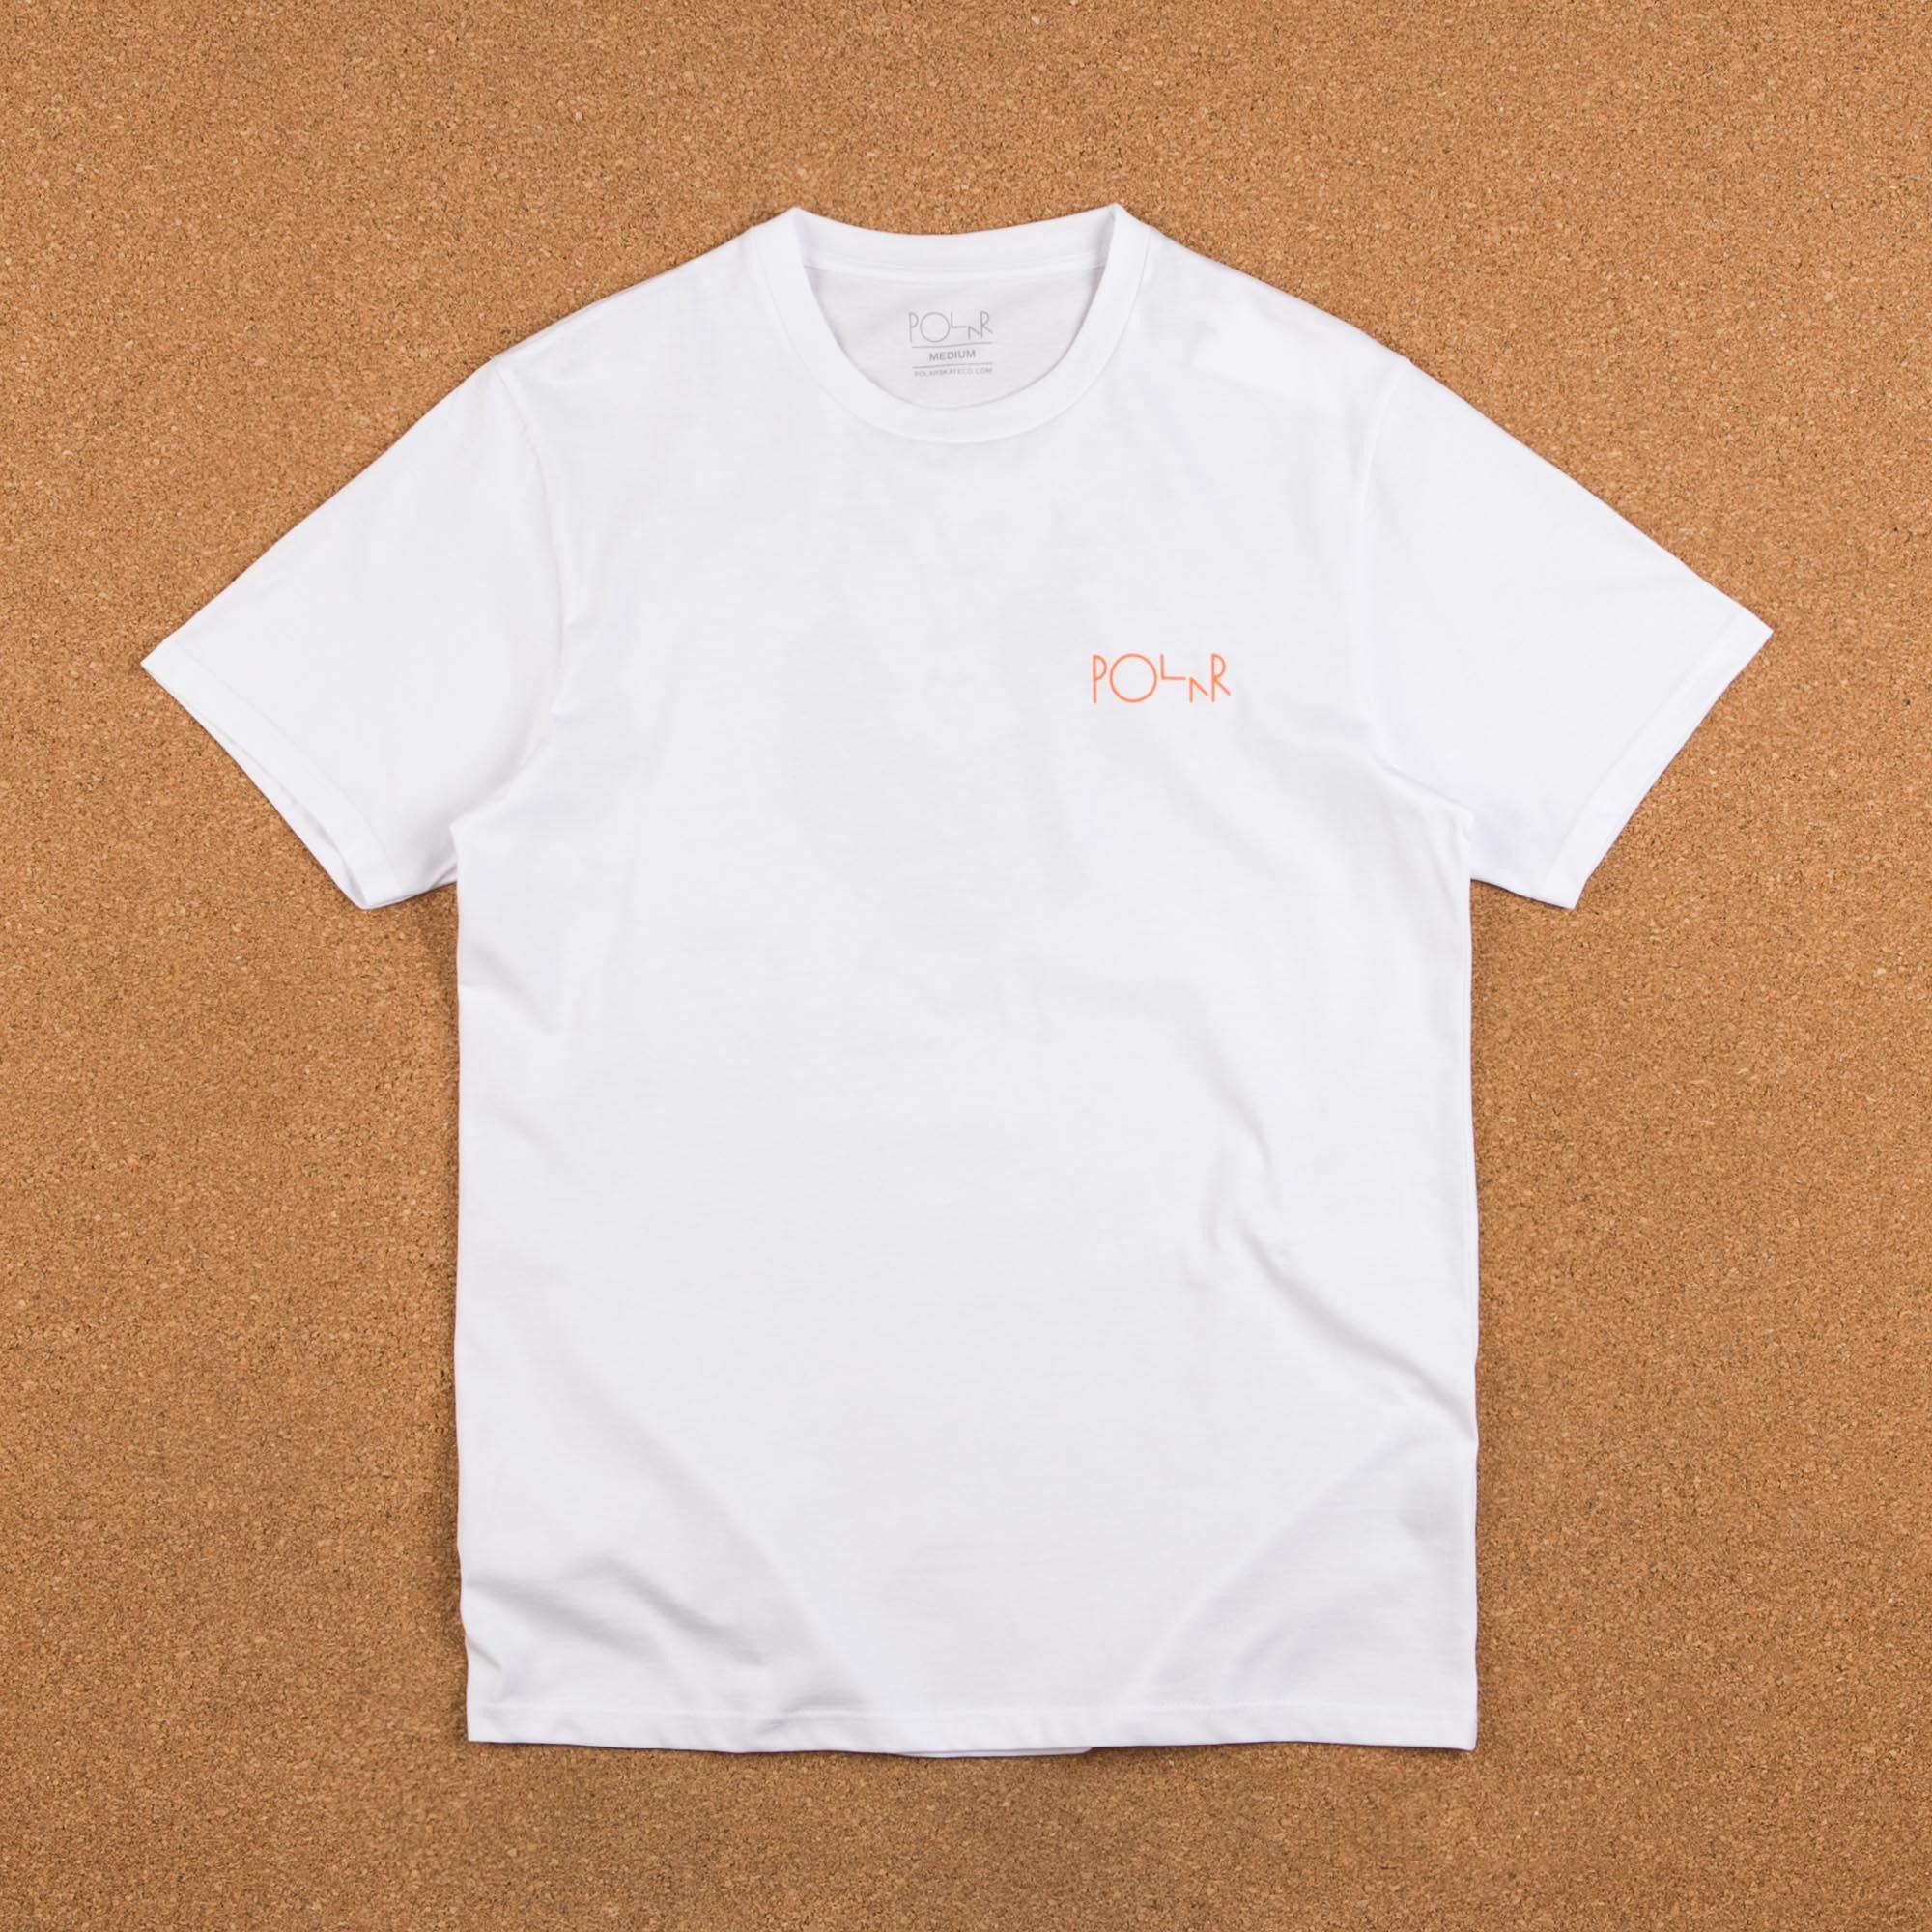 Polar Nick T-Shirt - White